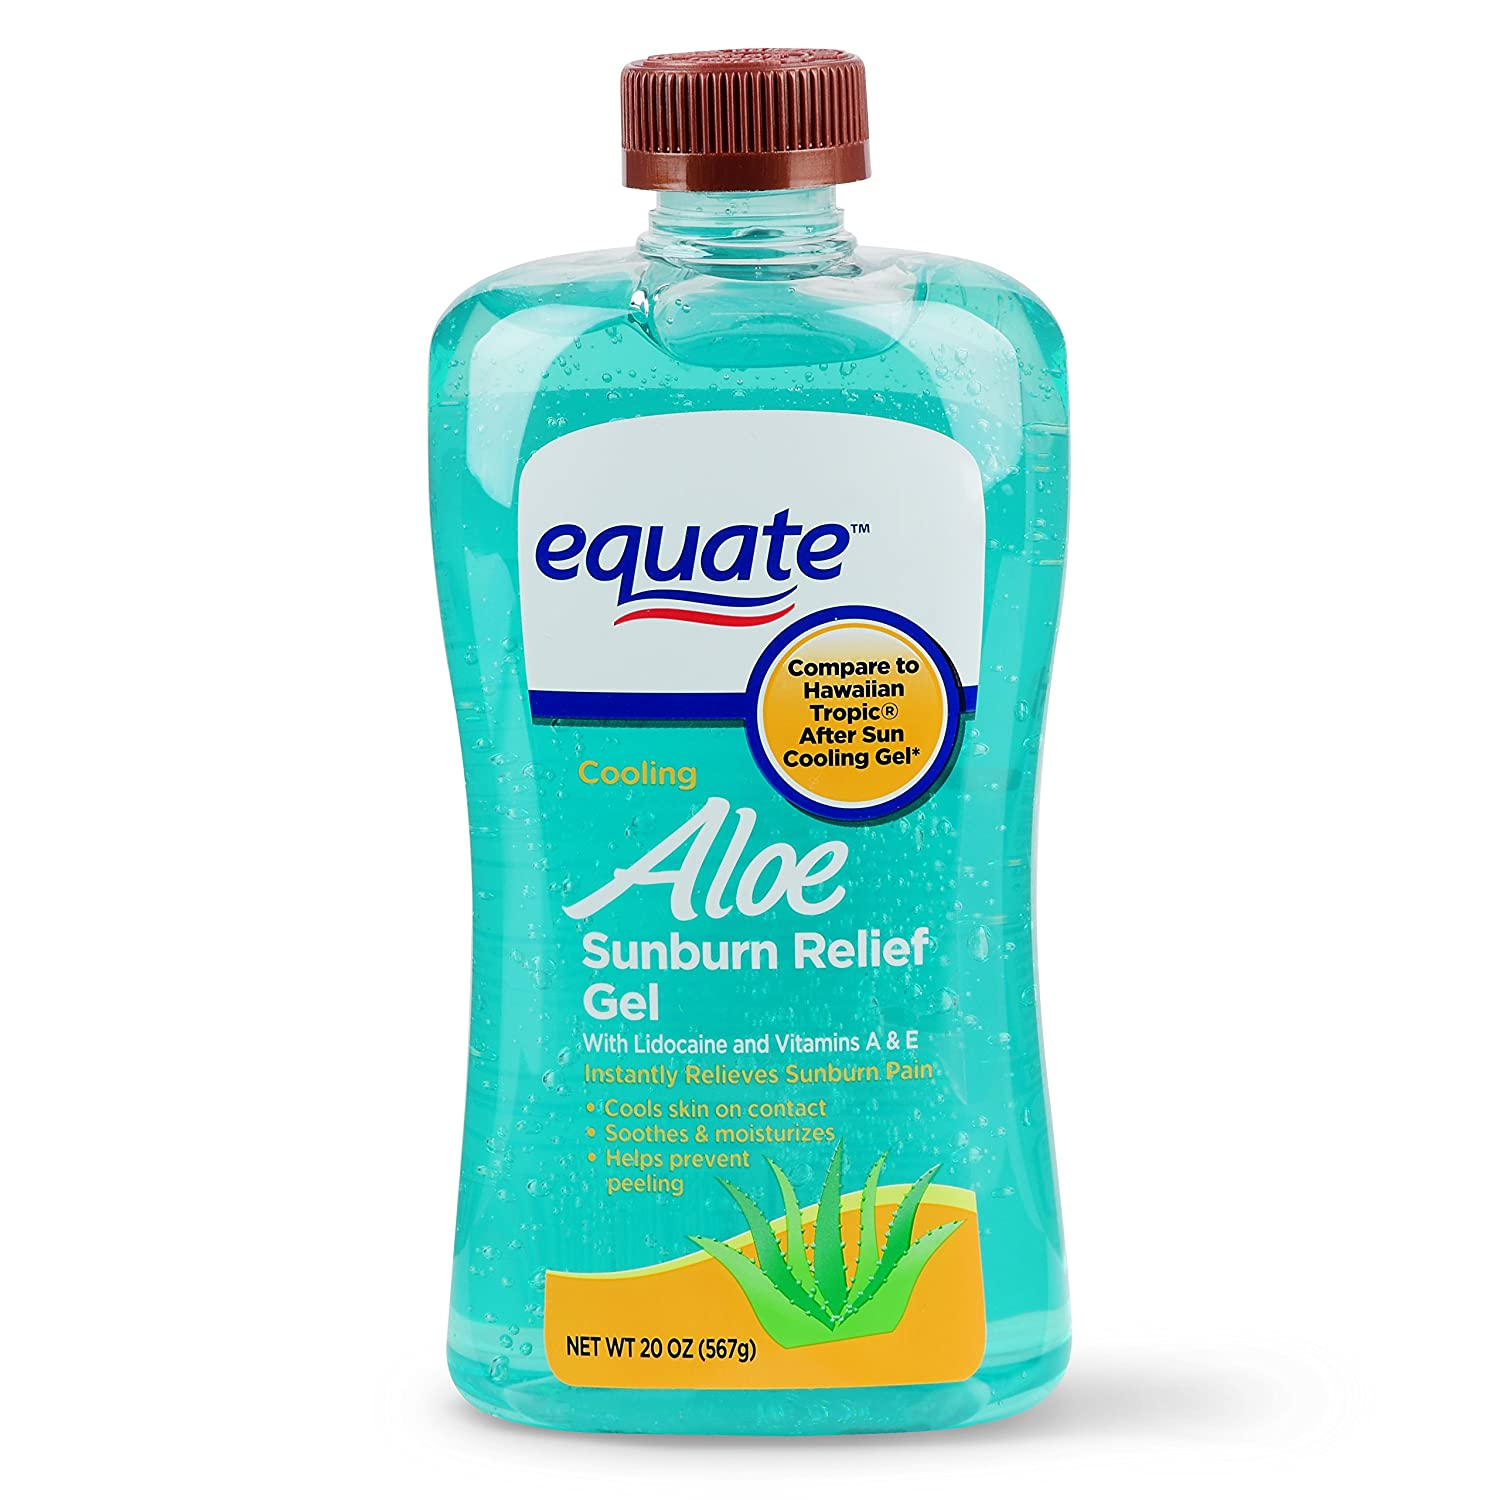 Equate (Compare to Hawaiian) tropic After Sun Cooling Gel Aloe, Lidocaine, and Vitamins A & E 20 Oz